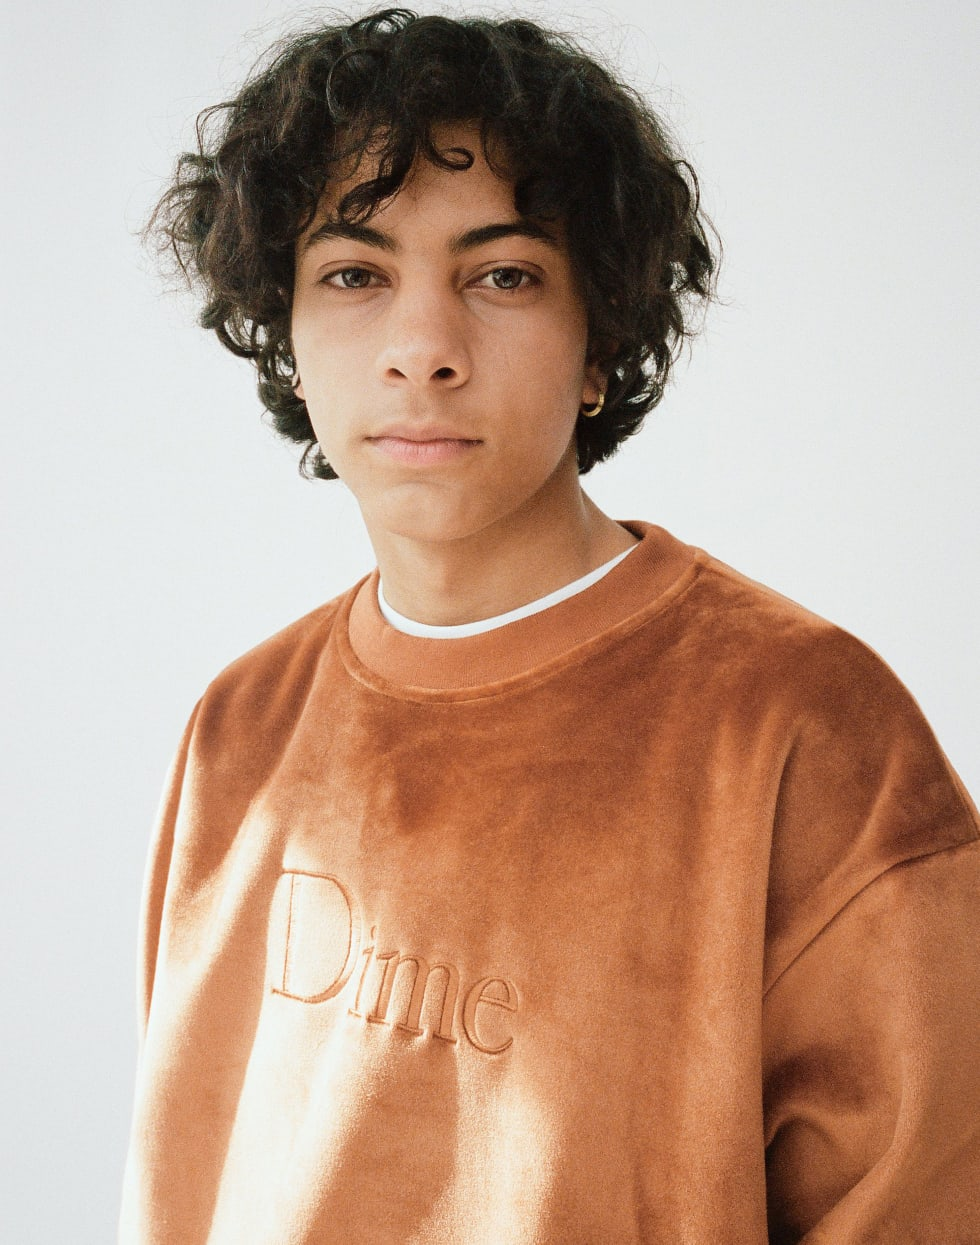 Dime Clothing Spring 2021 Preview Lookbook 2